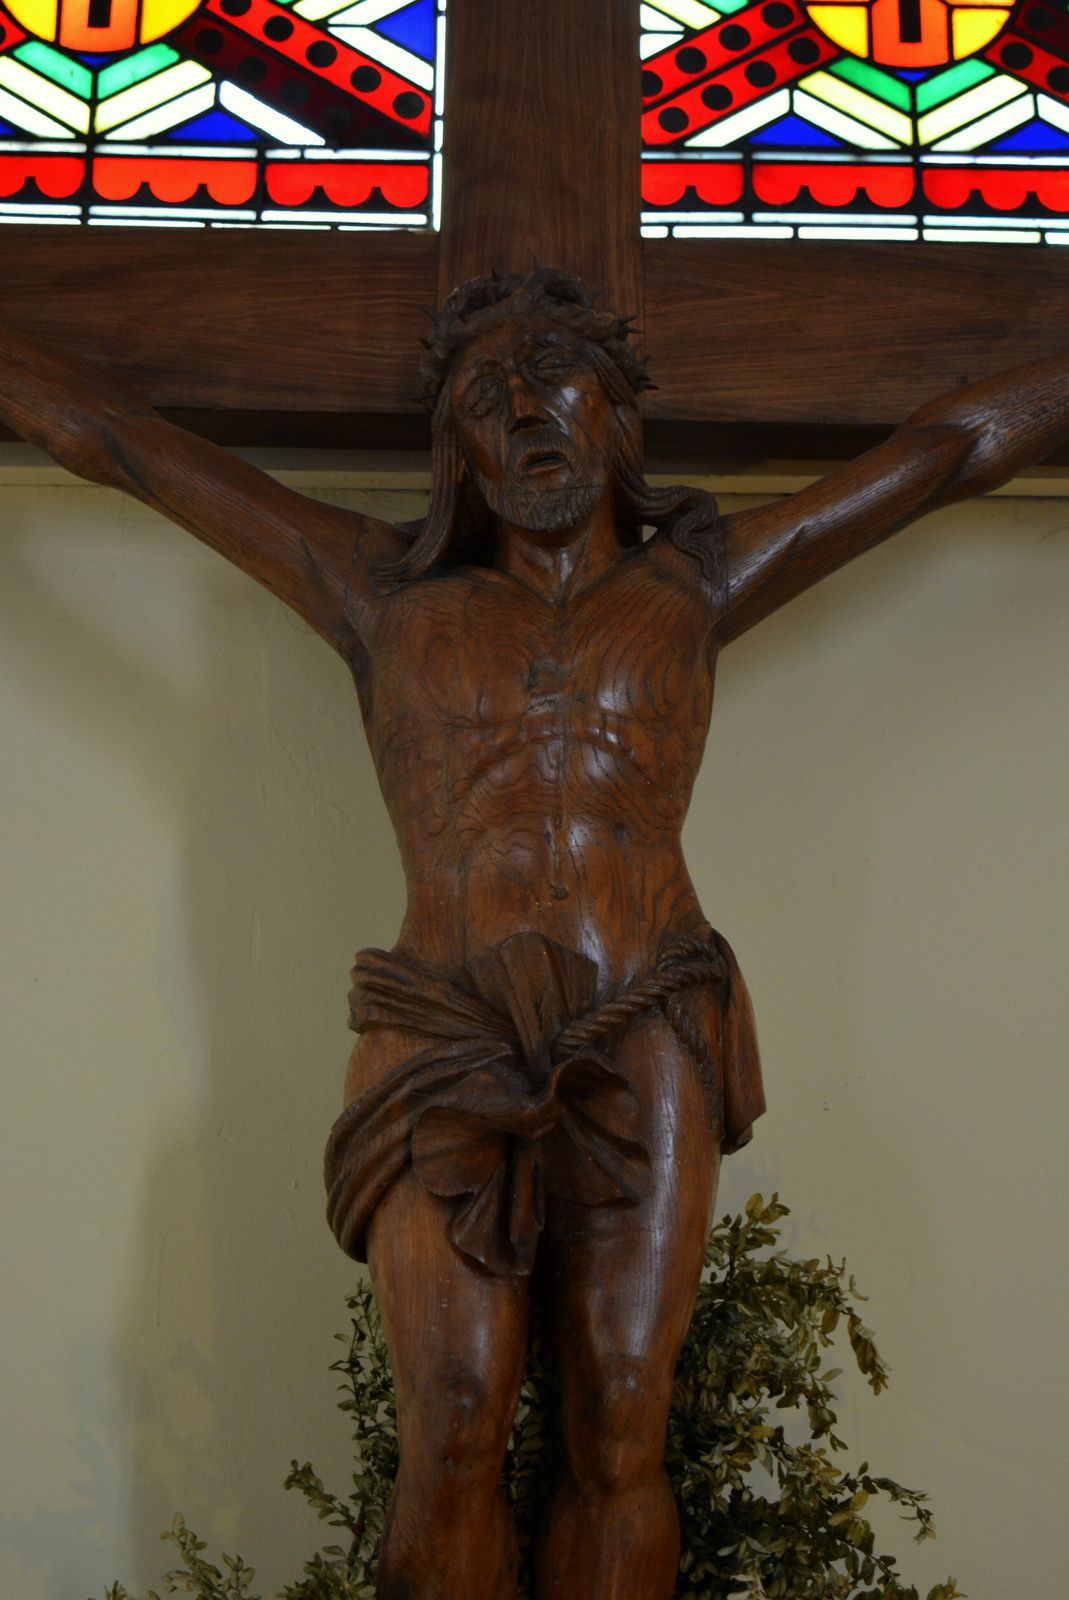 Sculpture du Christ se trouvant dans le choeur de l'église - Photo : MG, 8 octobre 2015.